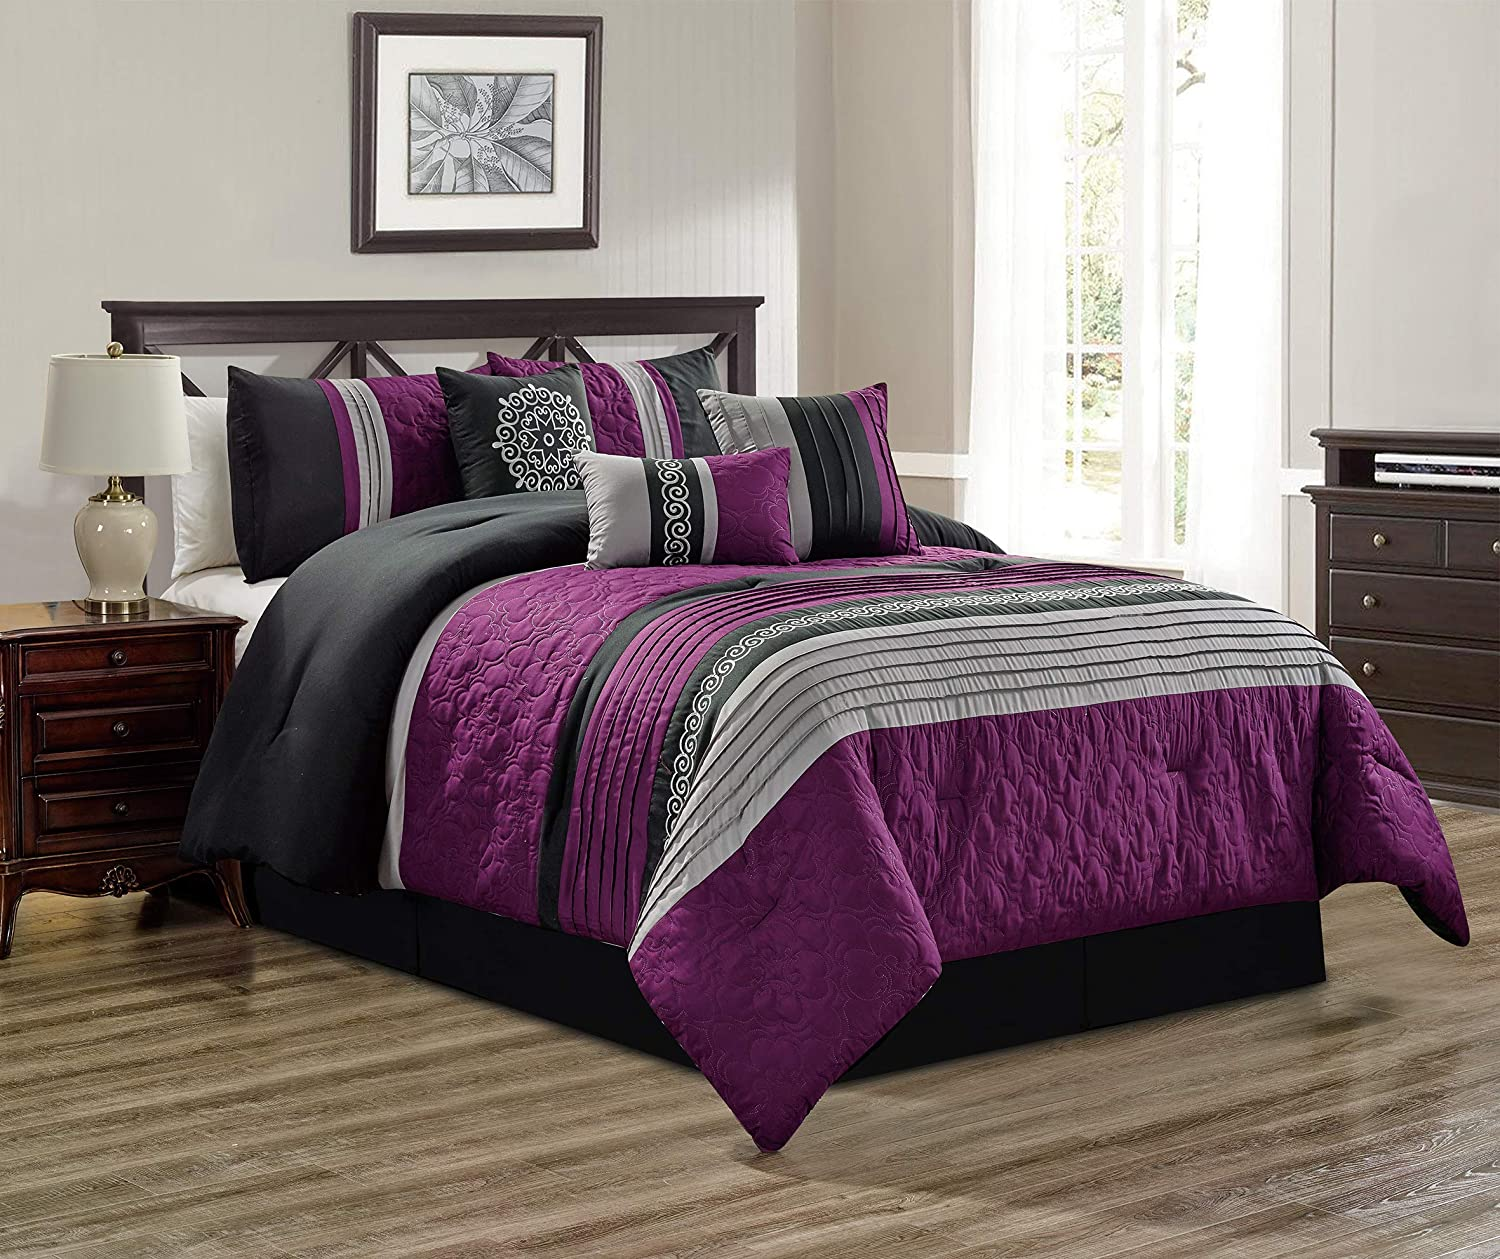 7 Piece Purple/Grey/Black/Gray Scroll Embroidery Bed in A Bag Microfiber Comforter Set (Double) Full Size Bedding. Perfect for Any Bed Room or Guest Room